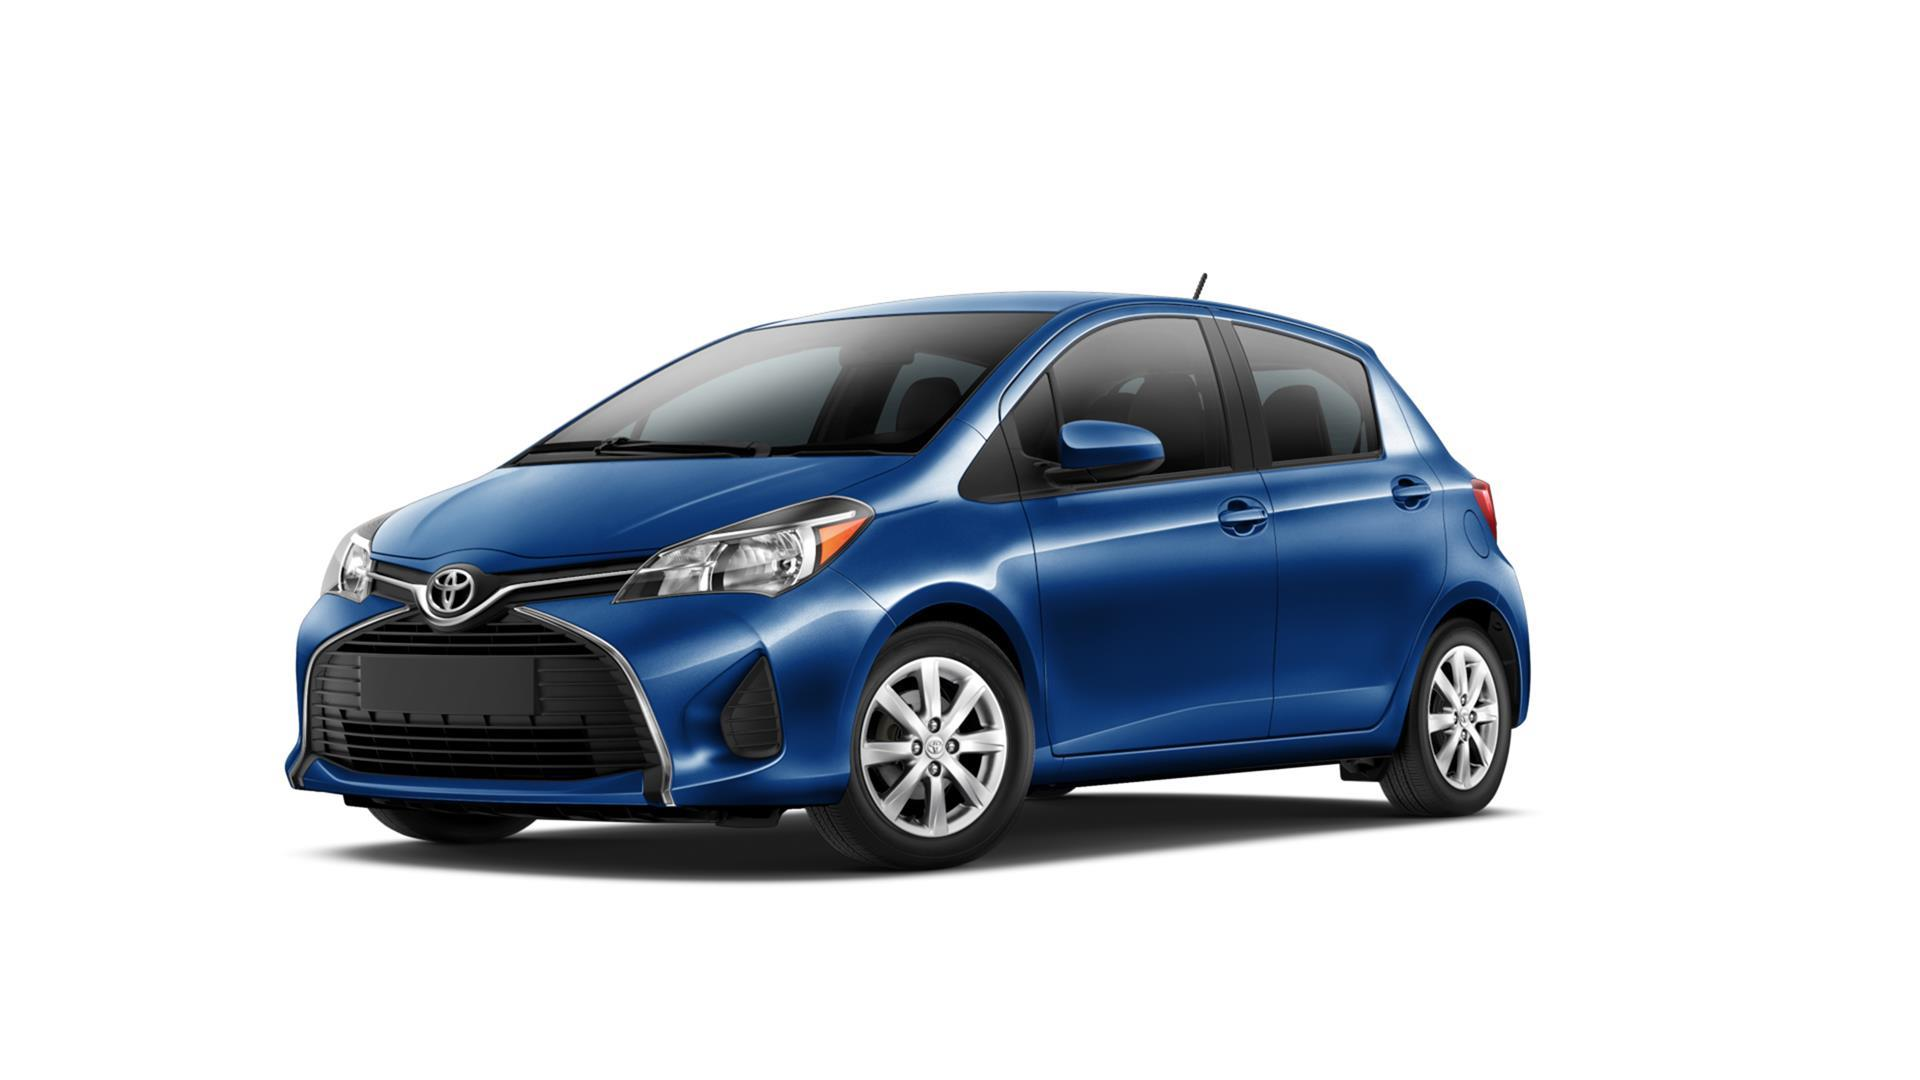 2017 toyota yaris news and information. Black Bedroom Furniture Sets. Home Design Ideas